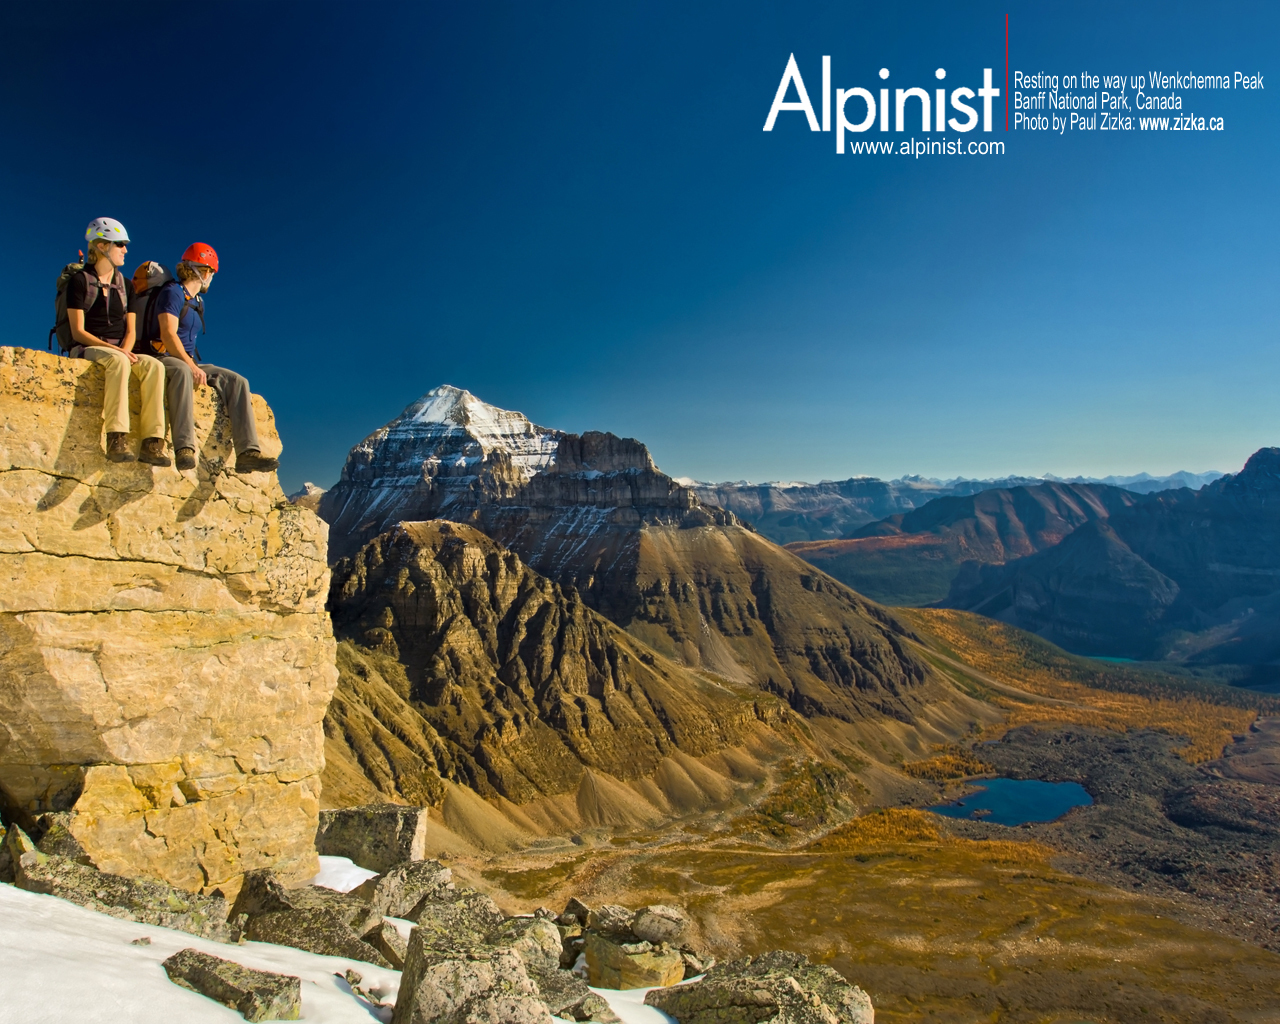 wallpaper archive - alpinist